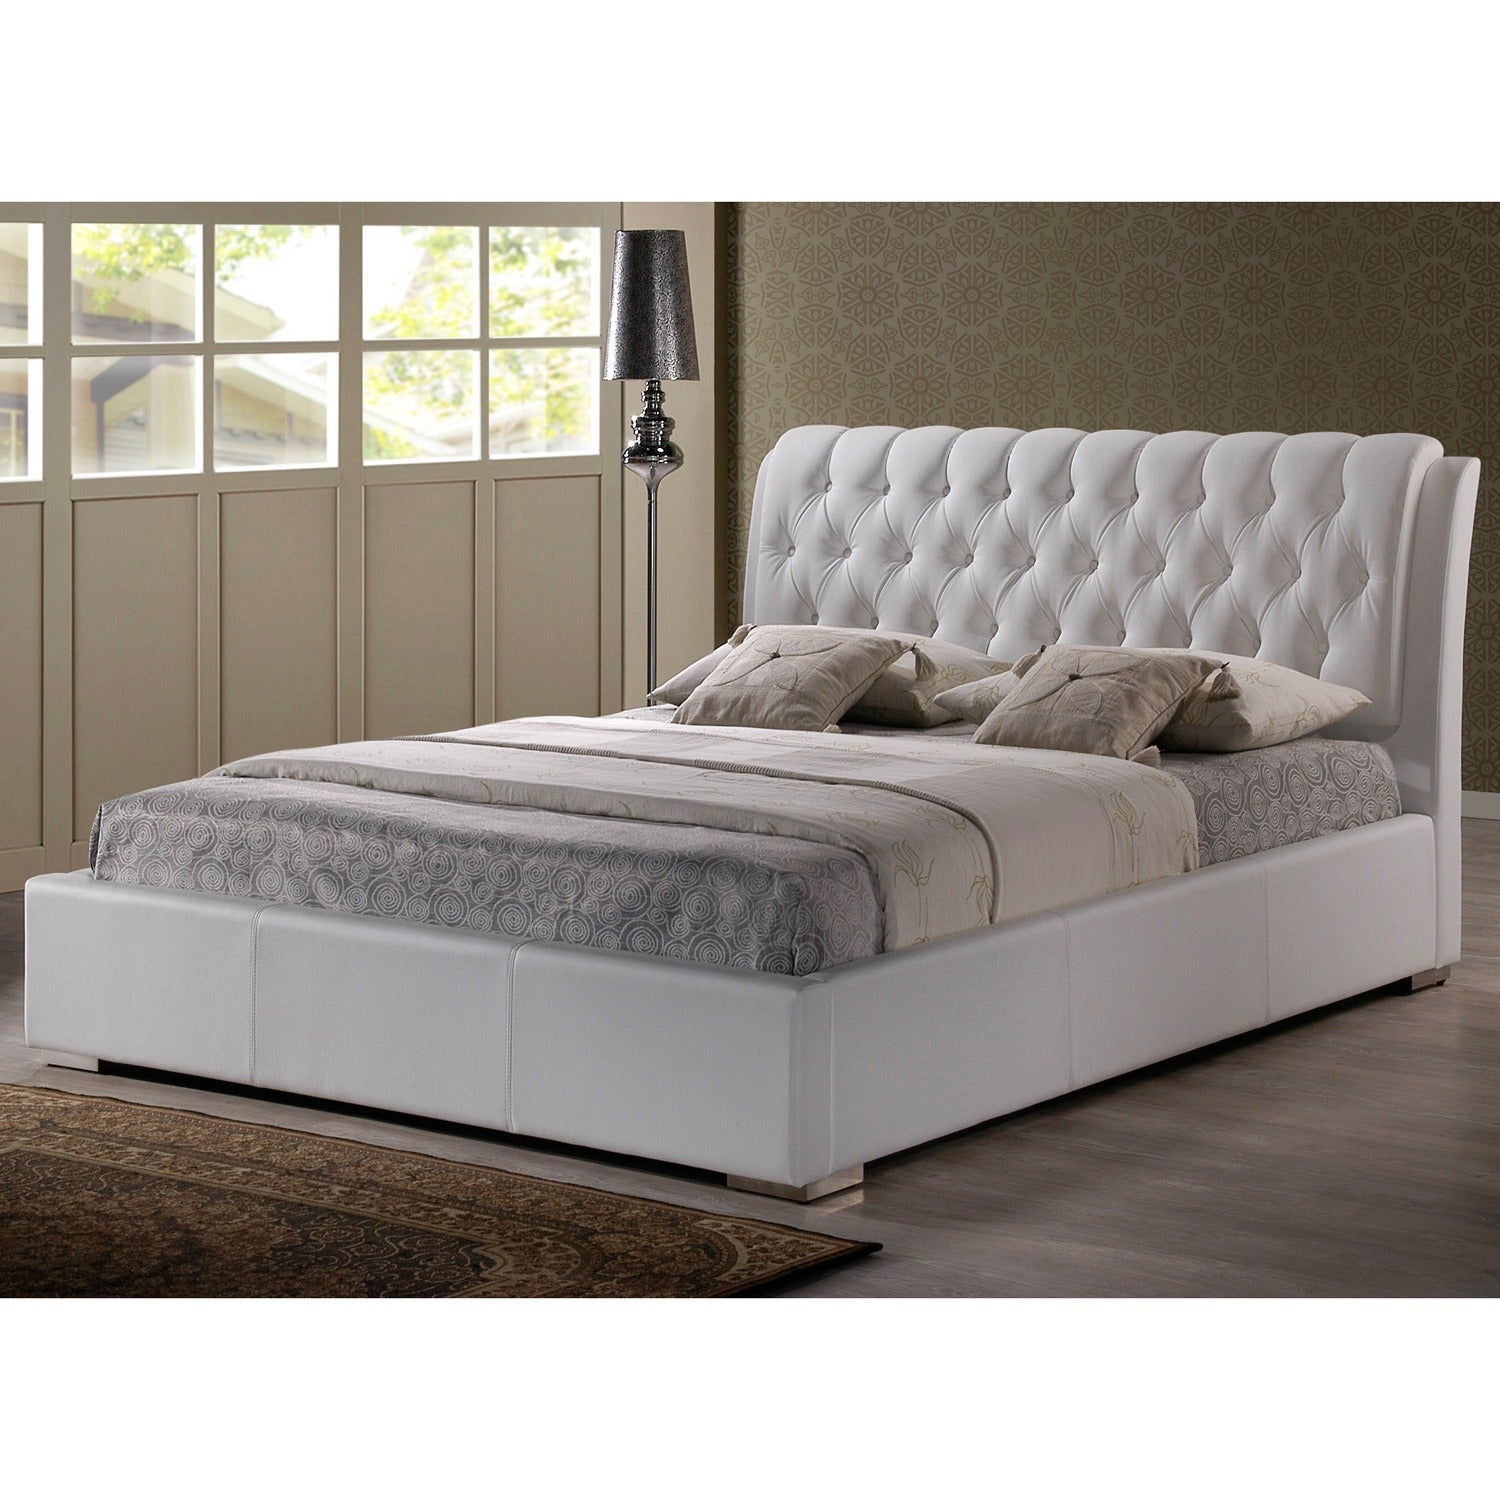 Shop Bianca Modern Queen-size Platform Bed - Free Shipping On Orders ...